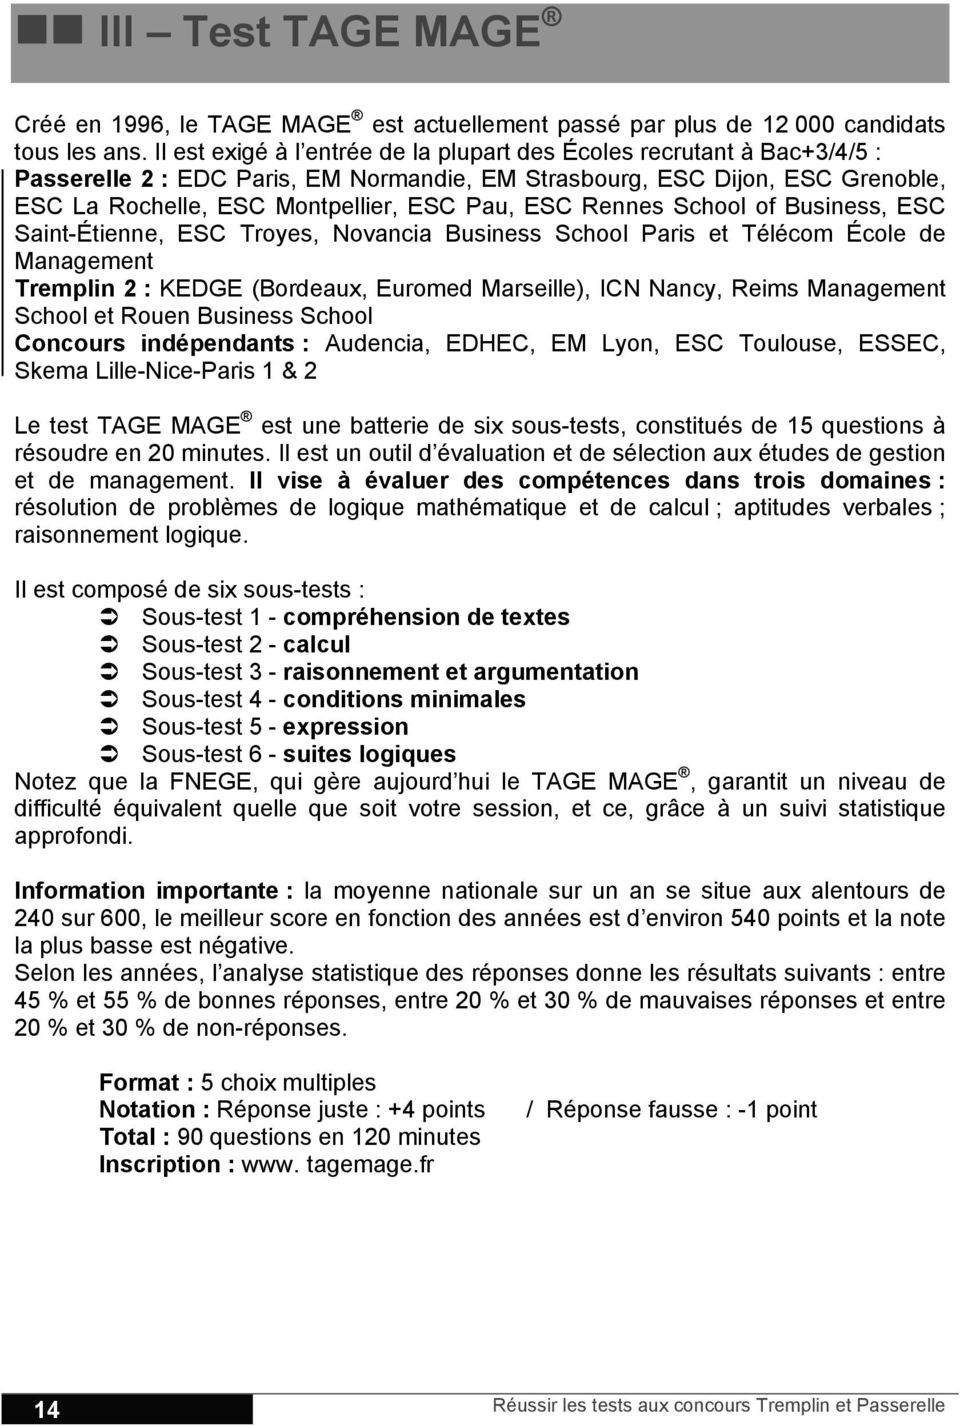 Rennes School of Business, ESC Saint-Étienne, ESC Troyes, Novancia Business School Paris et Télécom École de Management Tremplin 2 : KEDGE (Bordeaux, Euromed Marseille), ICN Nancy, Reims Management